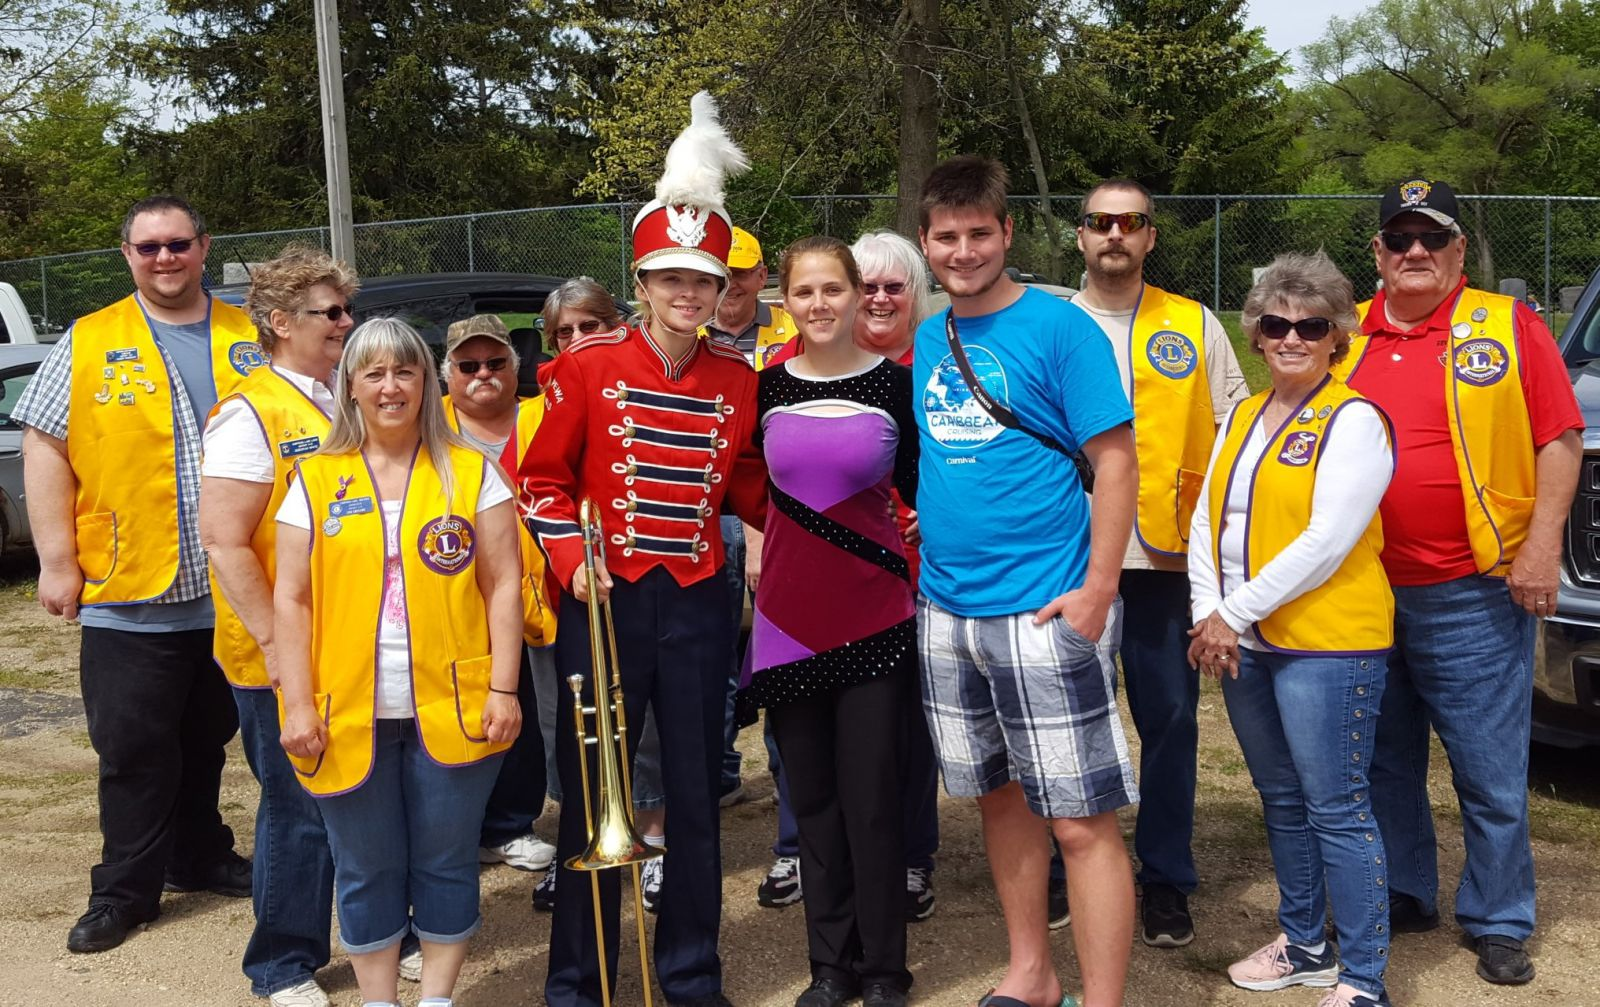 Chippewa Hills All state band students with chippewa lake mecosta lions club after parade